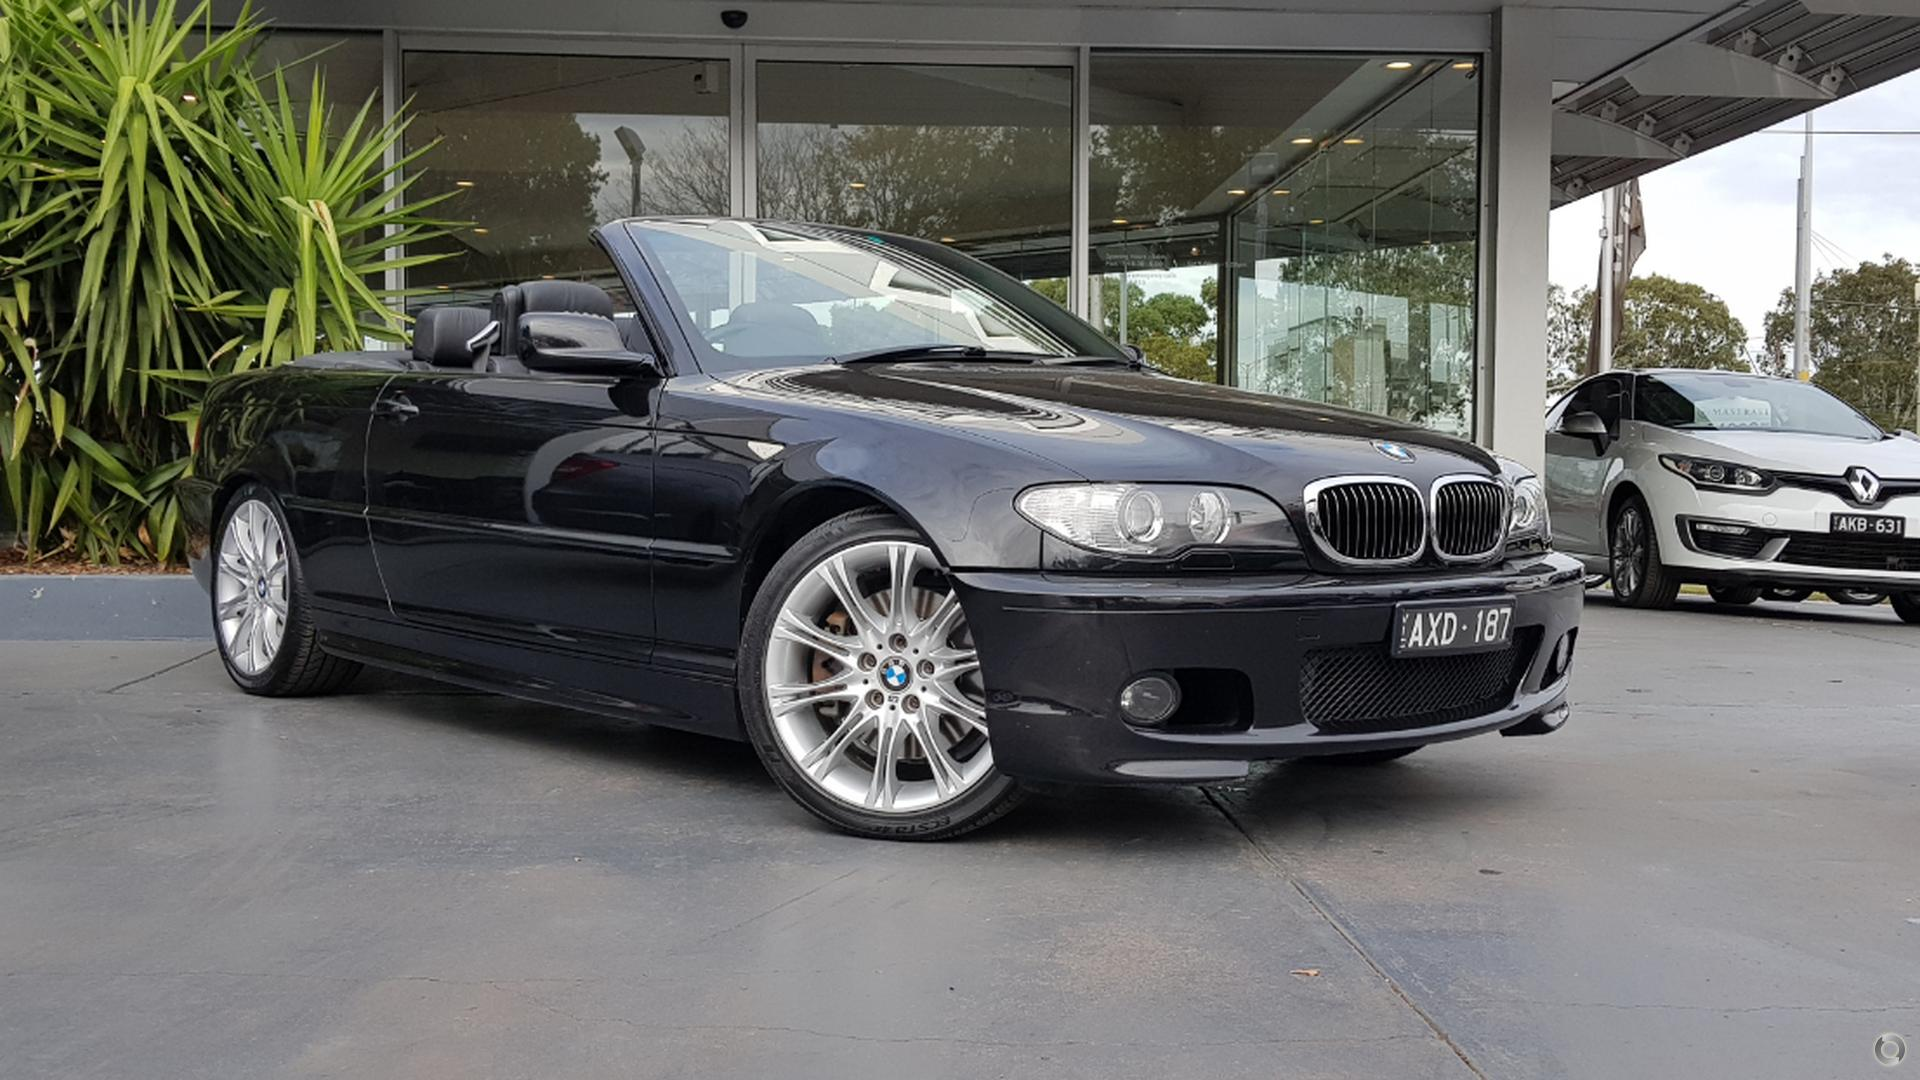 2006 BMW 330Ci High-line E46